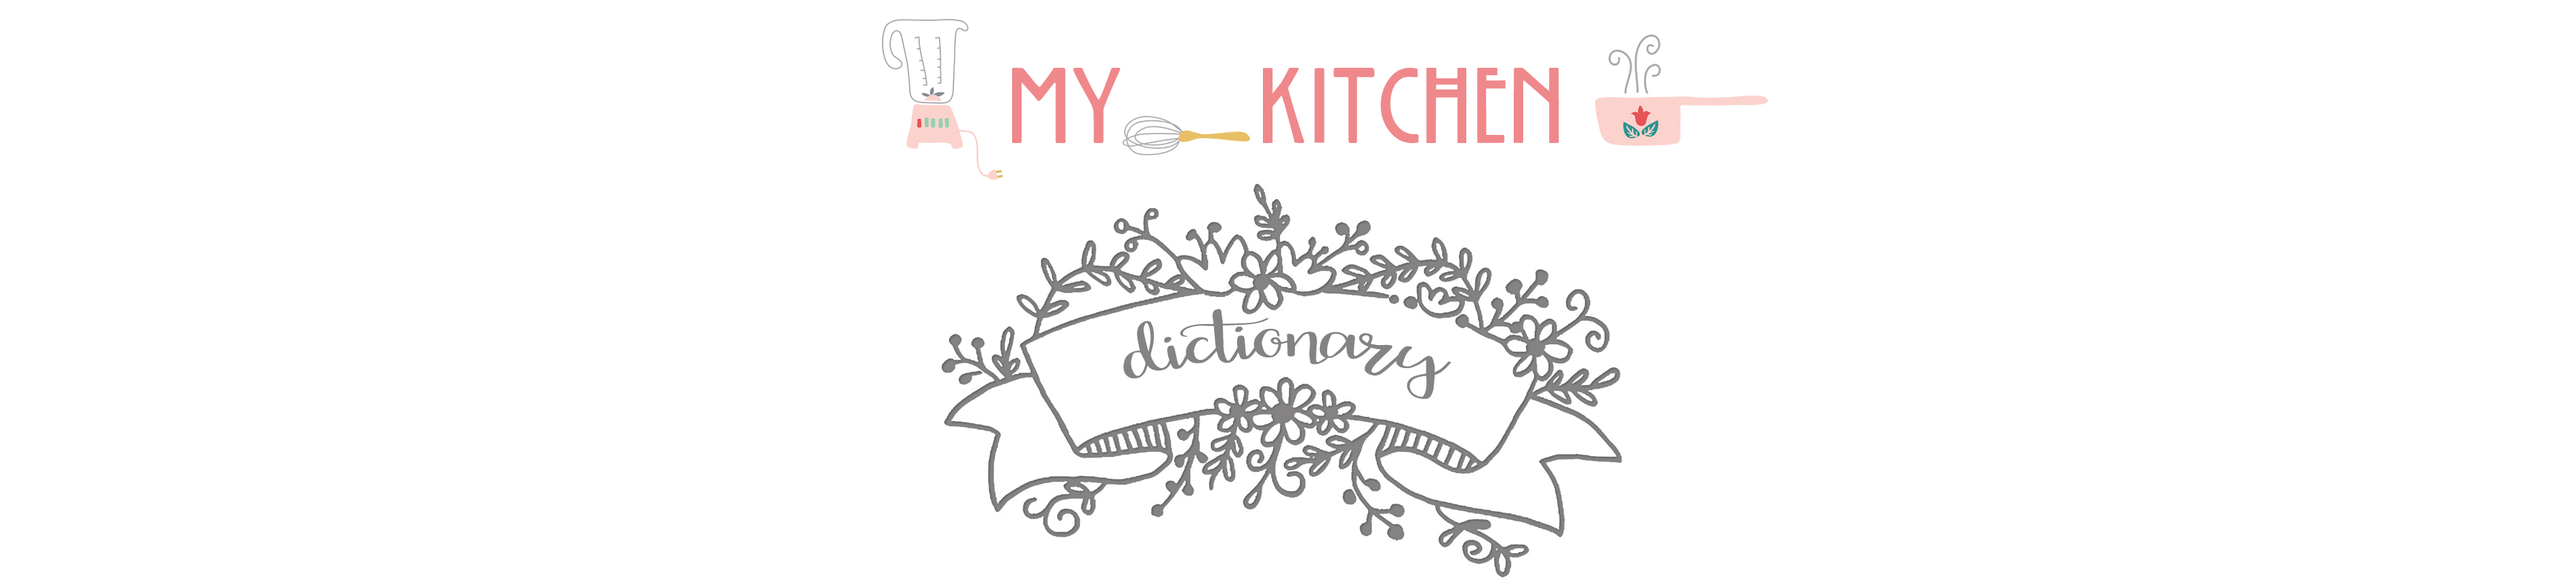 My Kitchen Dictionary